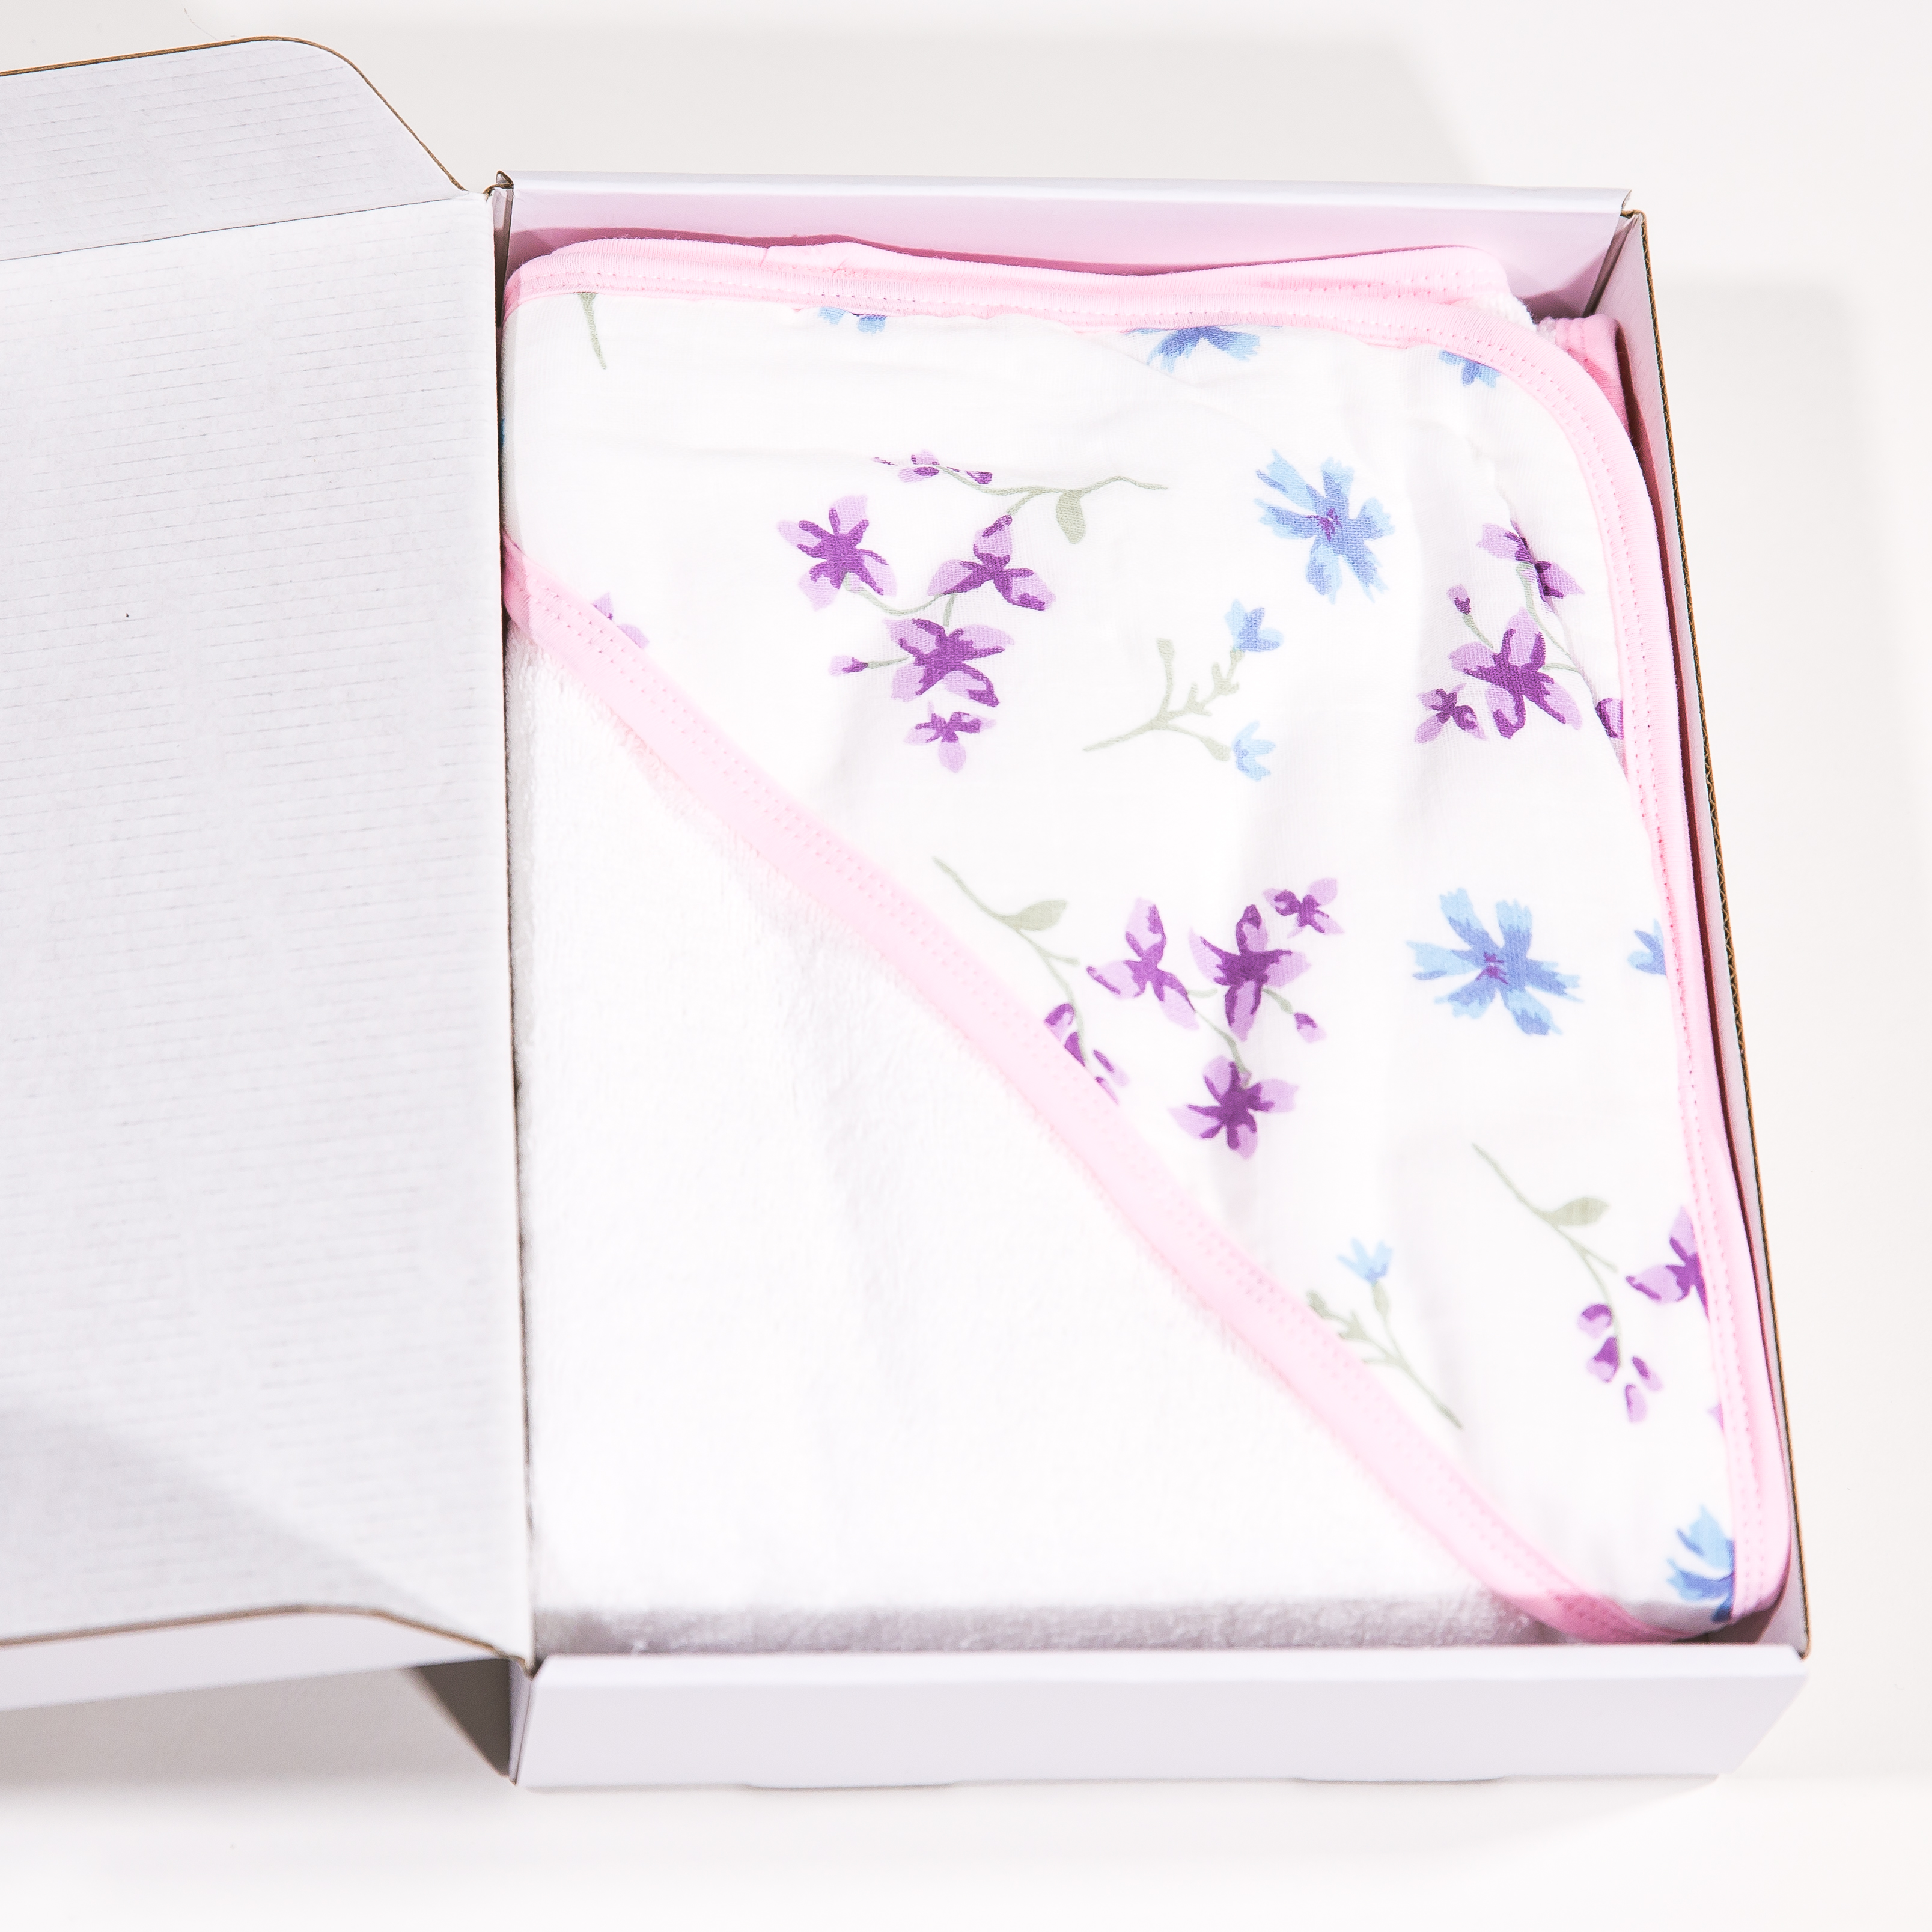 Hooded baby towel made of organic cotton flowers